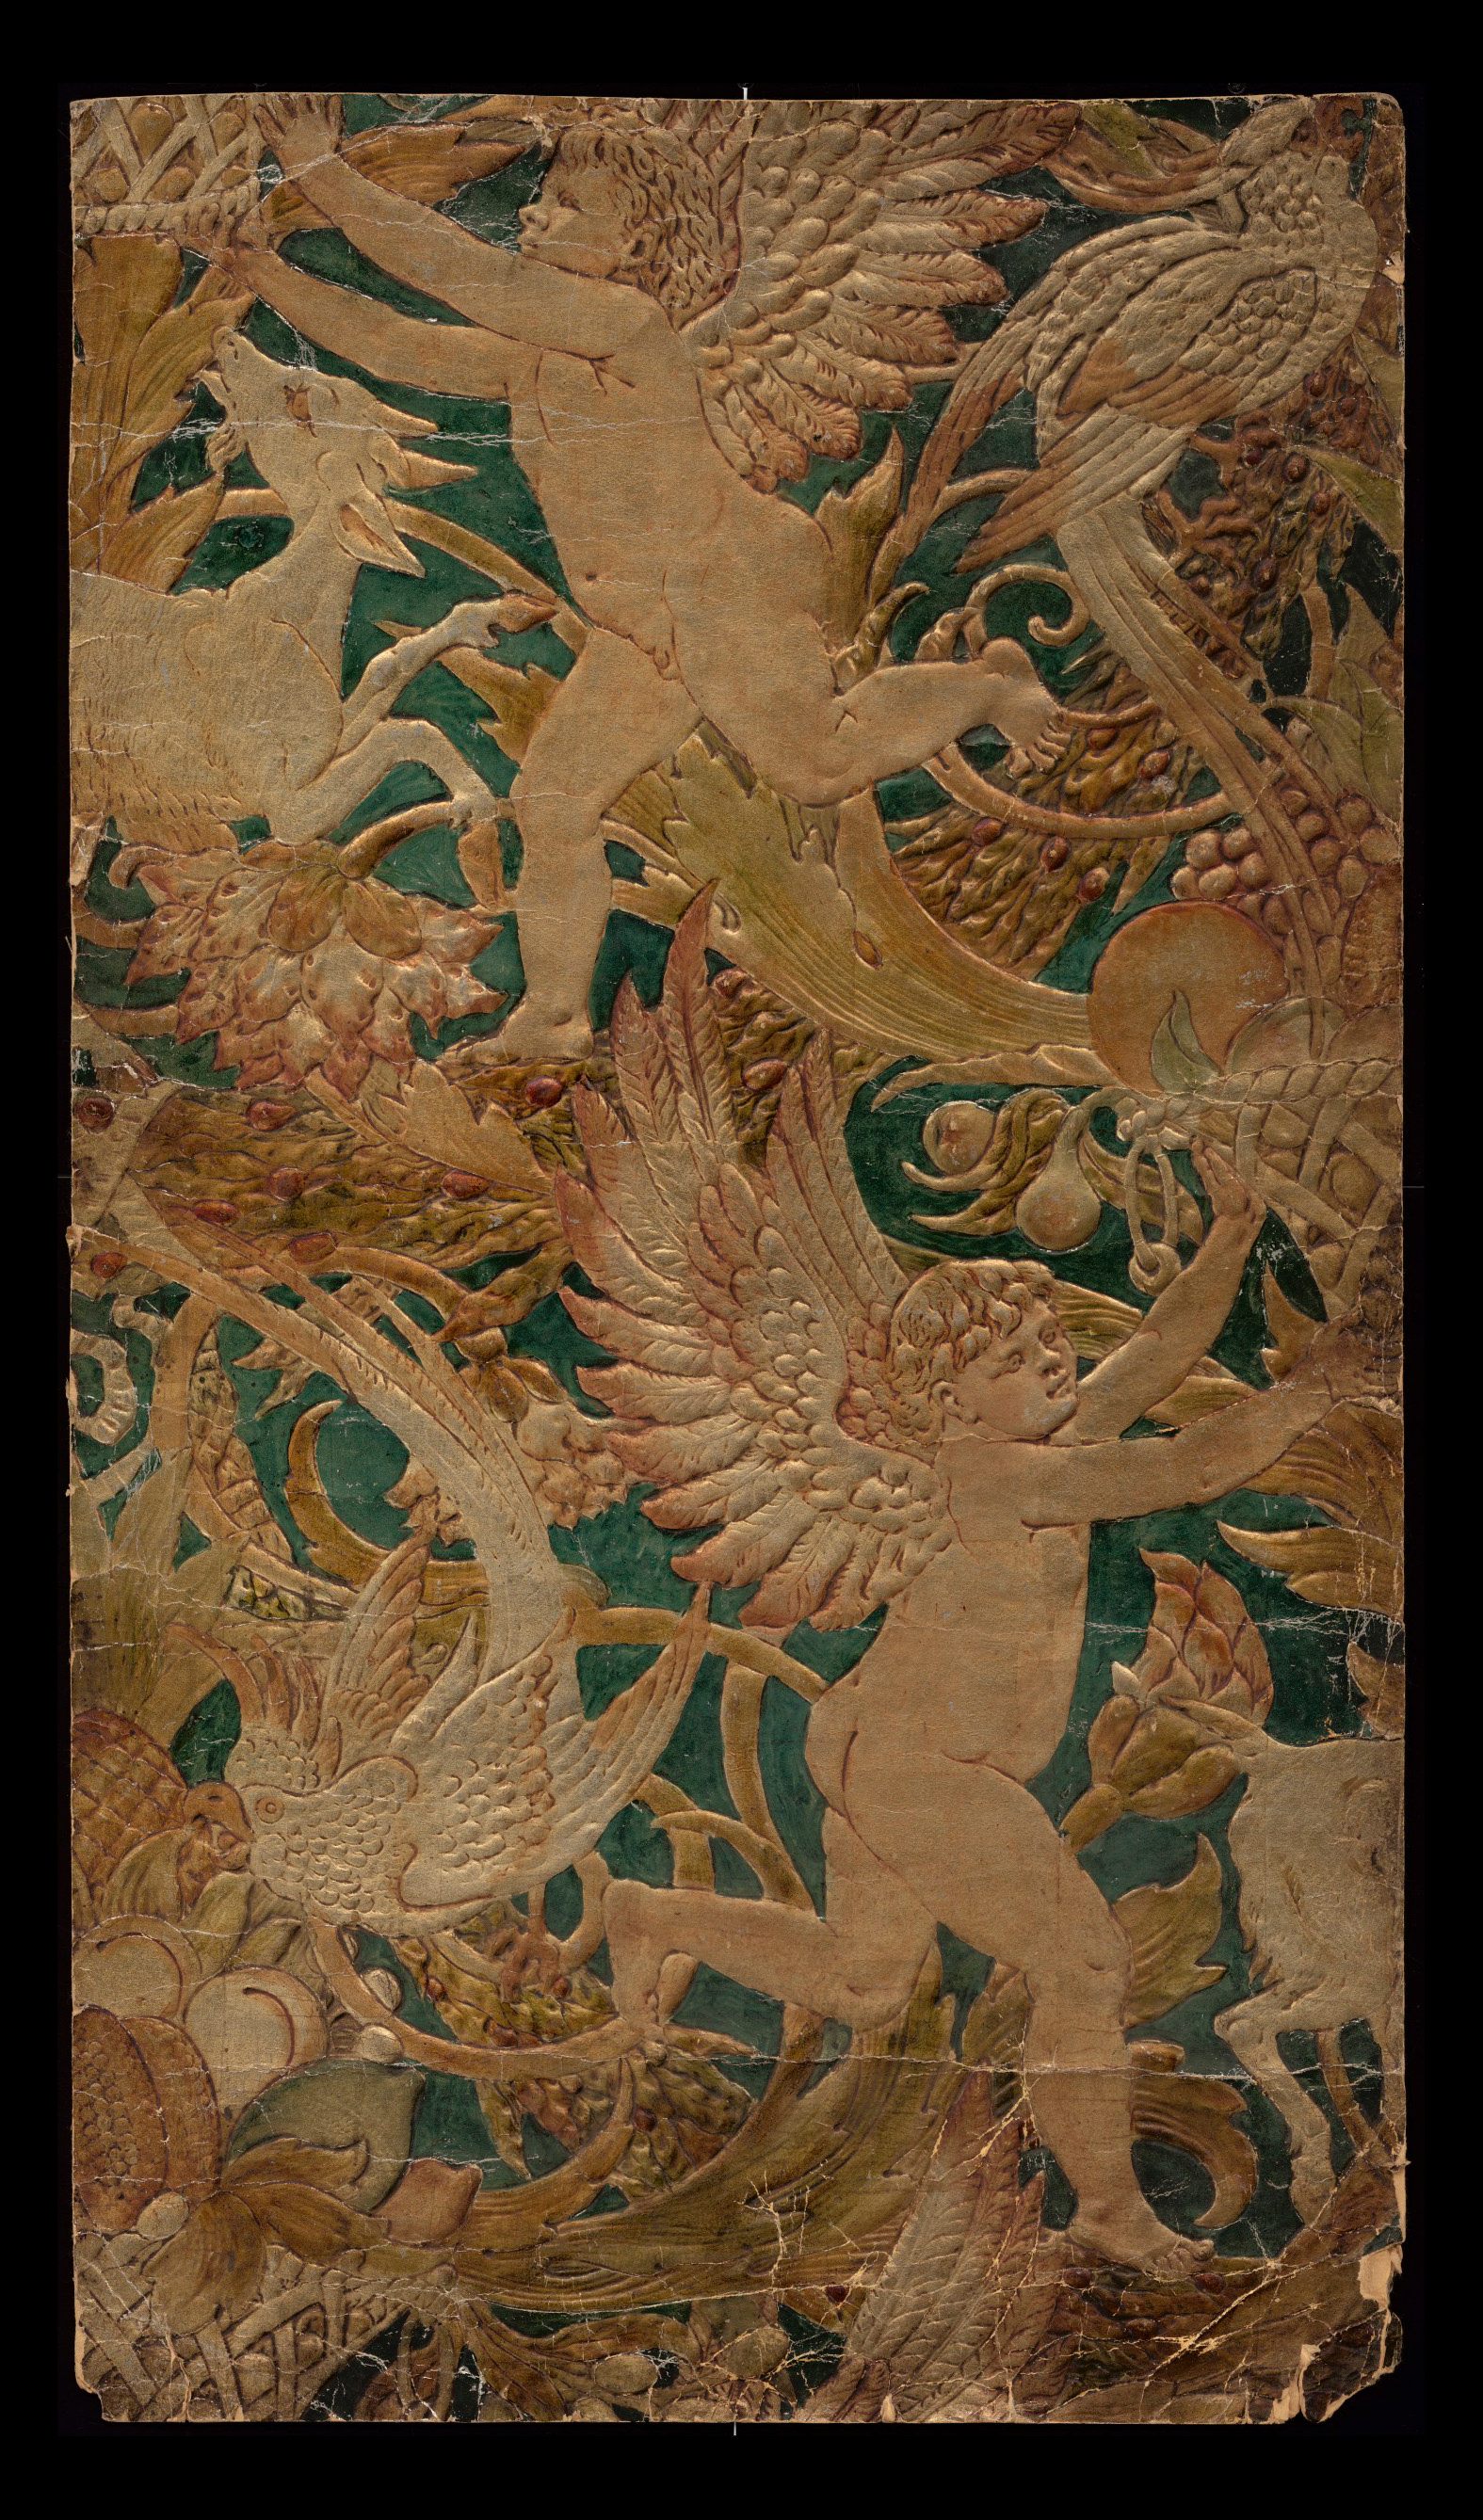 embossed pasteboard simulating leather, with coloured lacquer, painted by Crane, 89 x 50.8 cm. Victoria and Albert Museum, London